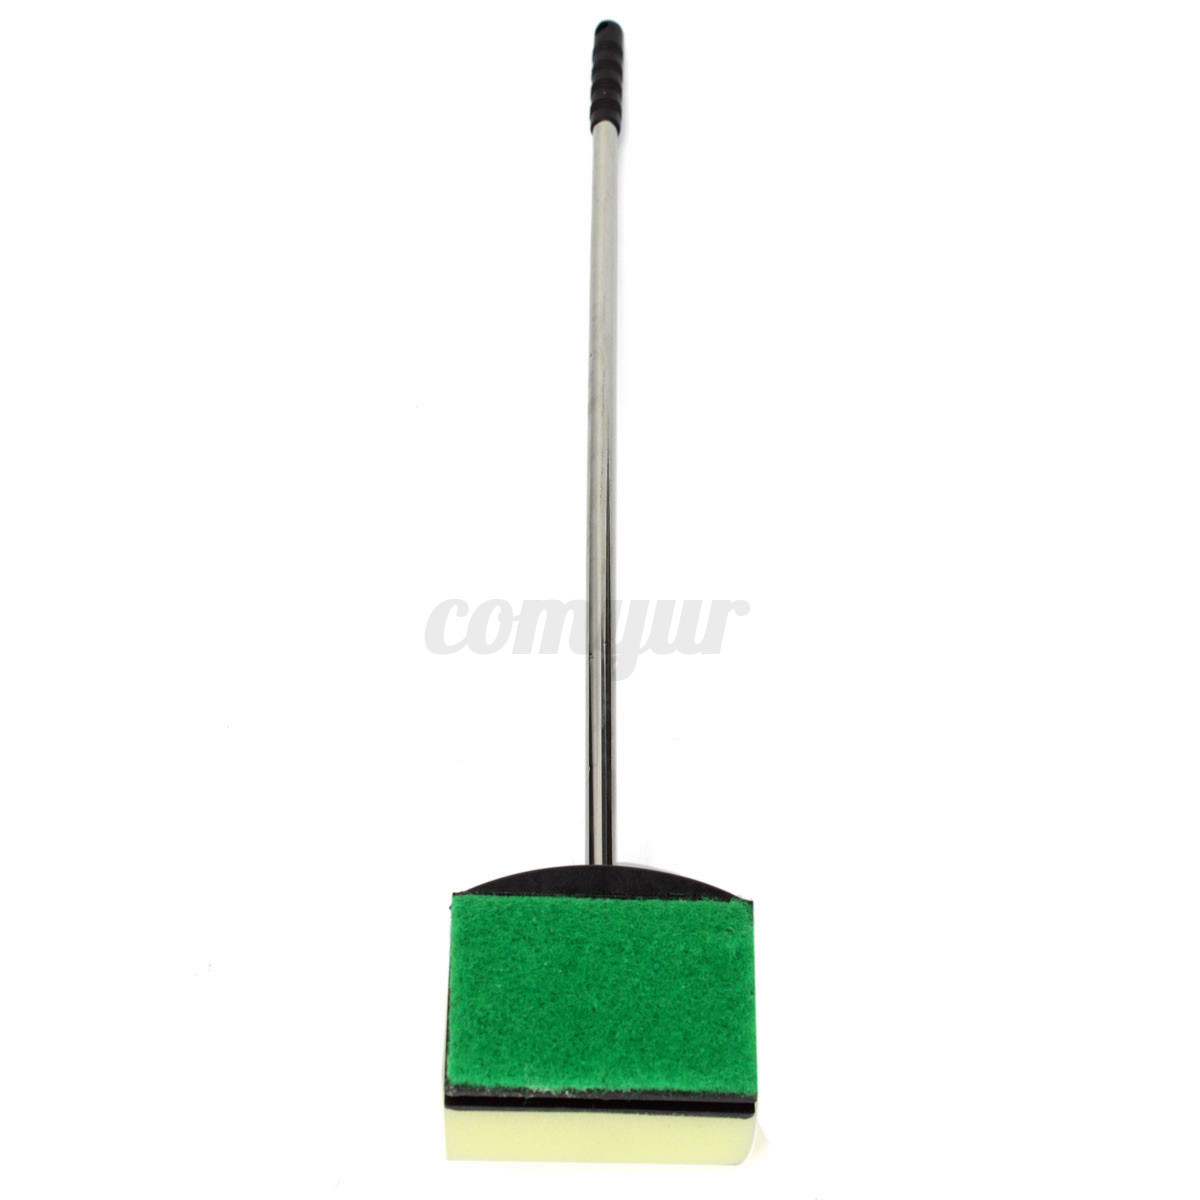 Uk aquarium brush cleaning tool sponge cleaner for glass for How to remove algae from fish tank glass